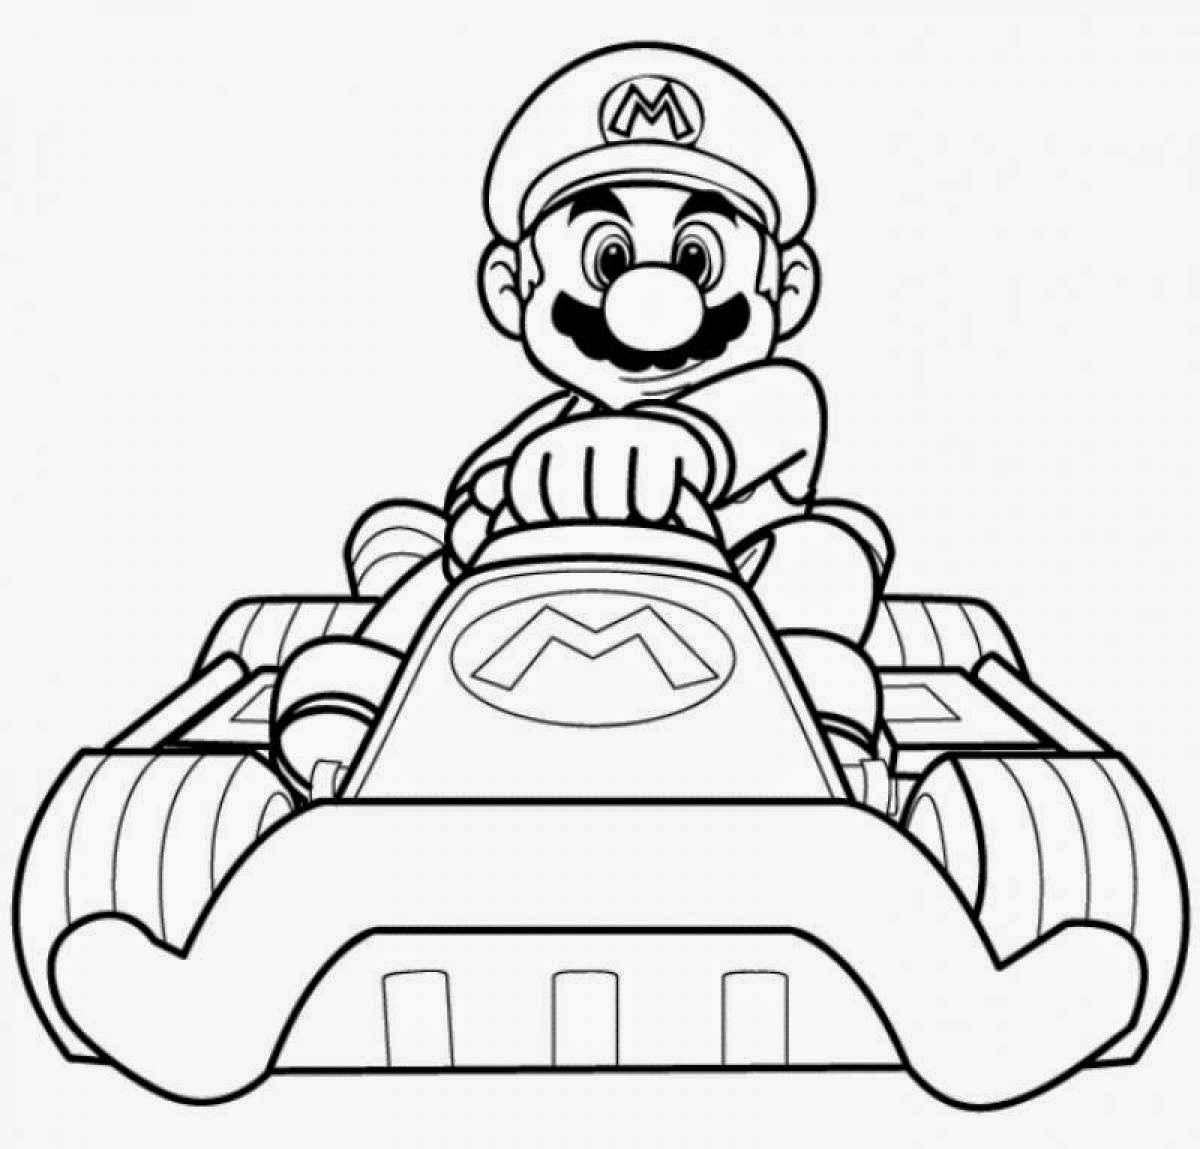 Mario Kart Coloring Pages Free Printable Mario Kart Coloring Pages For Kids